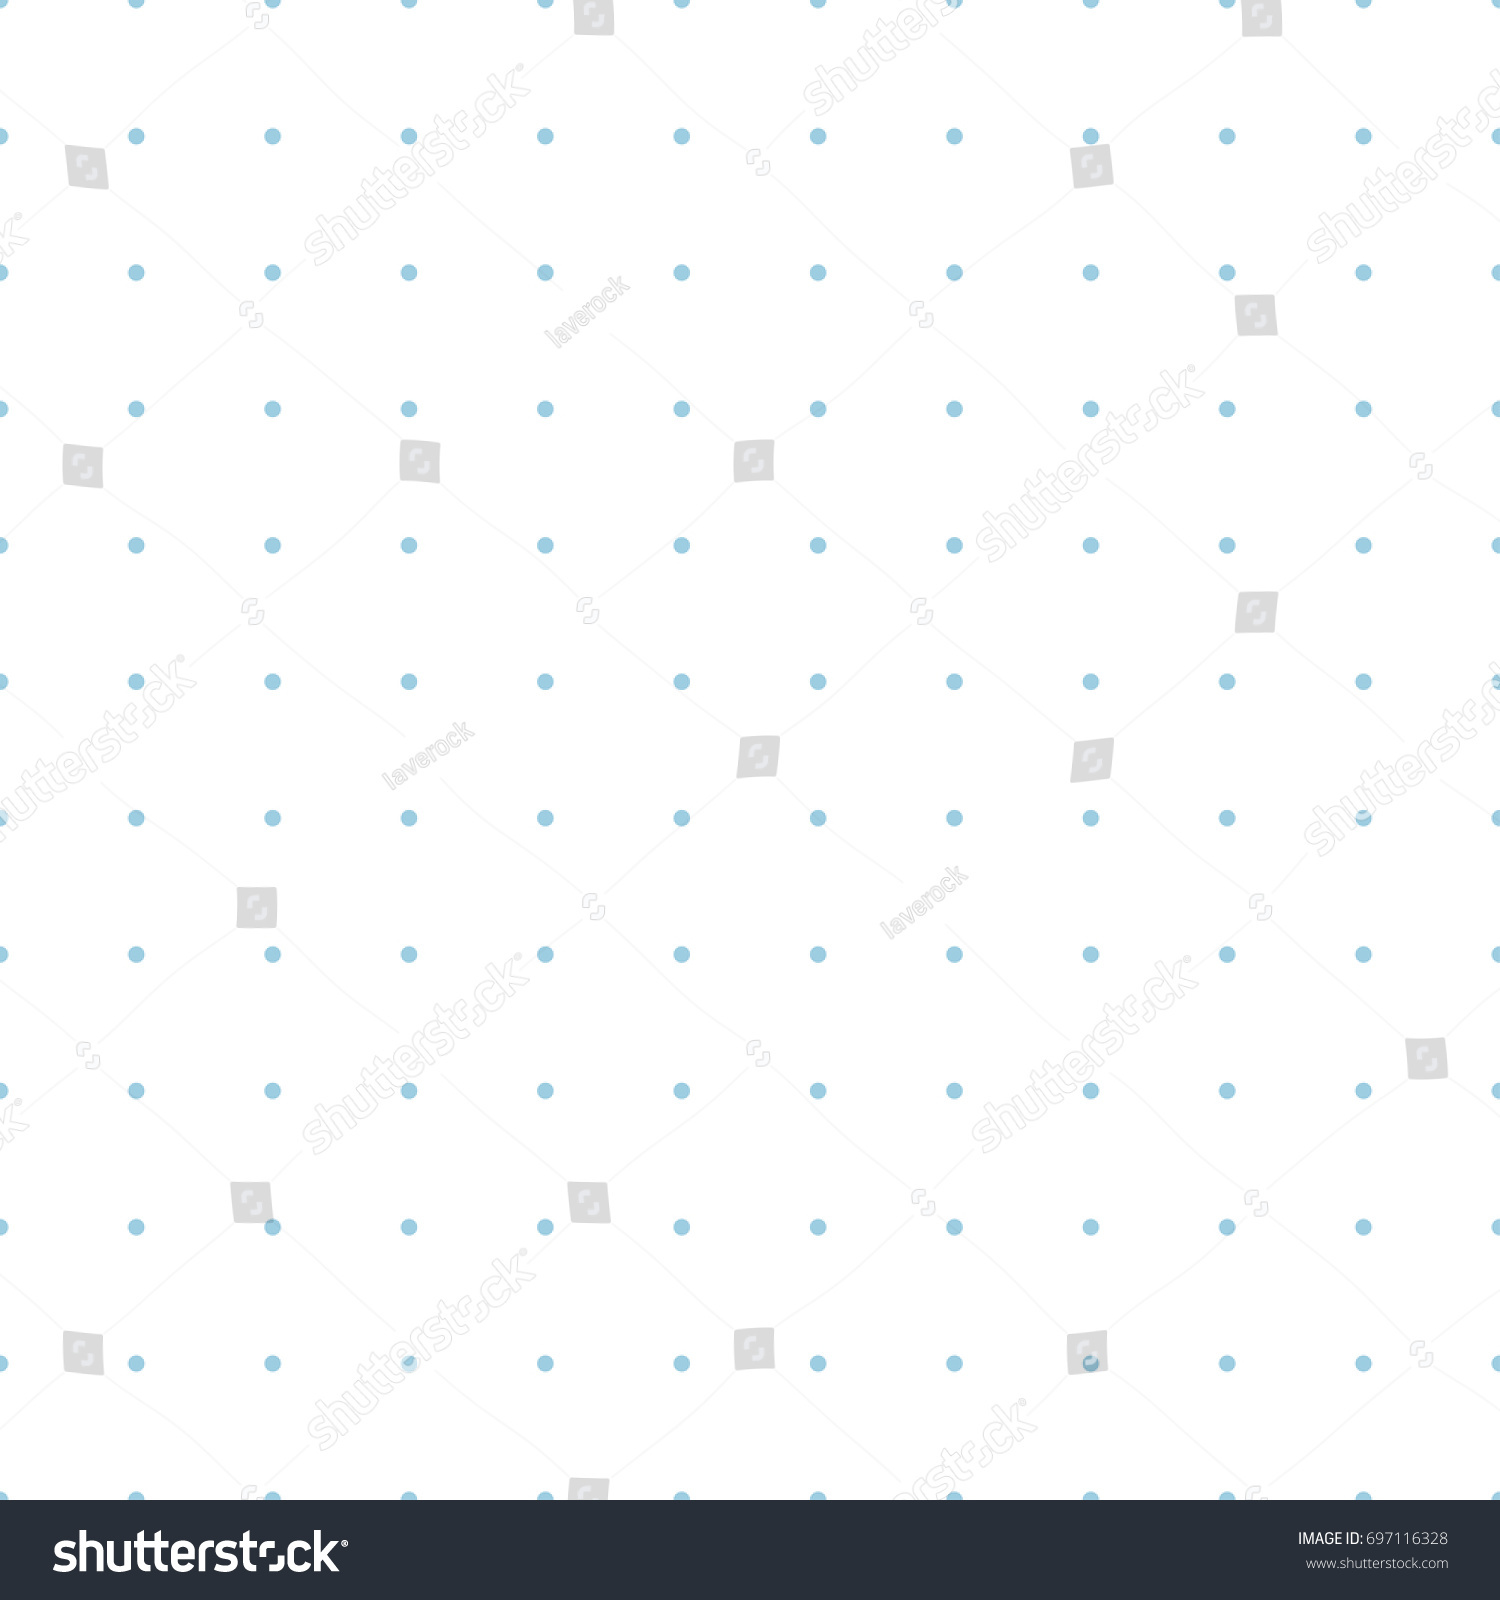 graphic about Printable Dot Paper for Bullet Journal known as Blue Dotted Grid Graph Paper Seamless Inventory Example